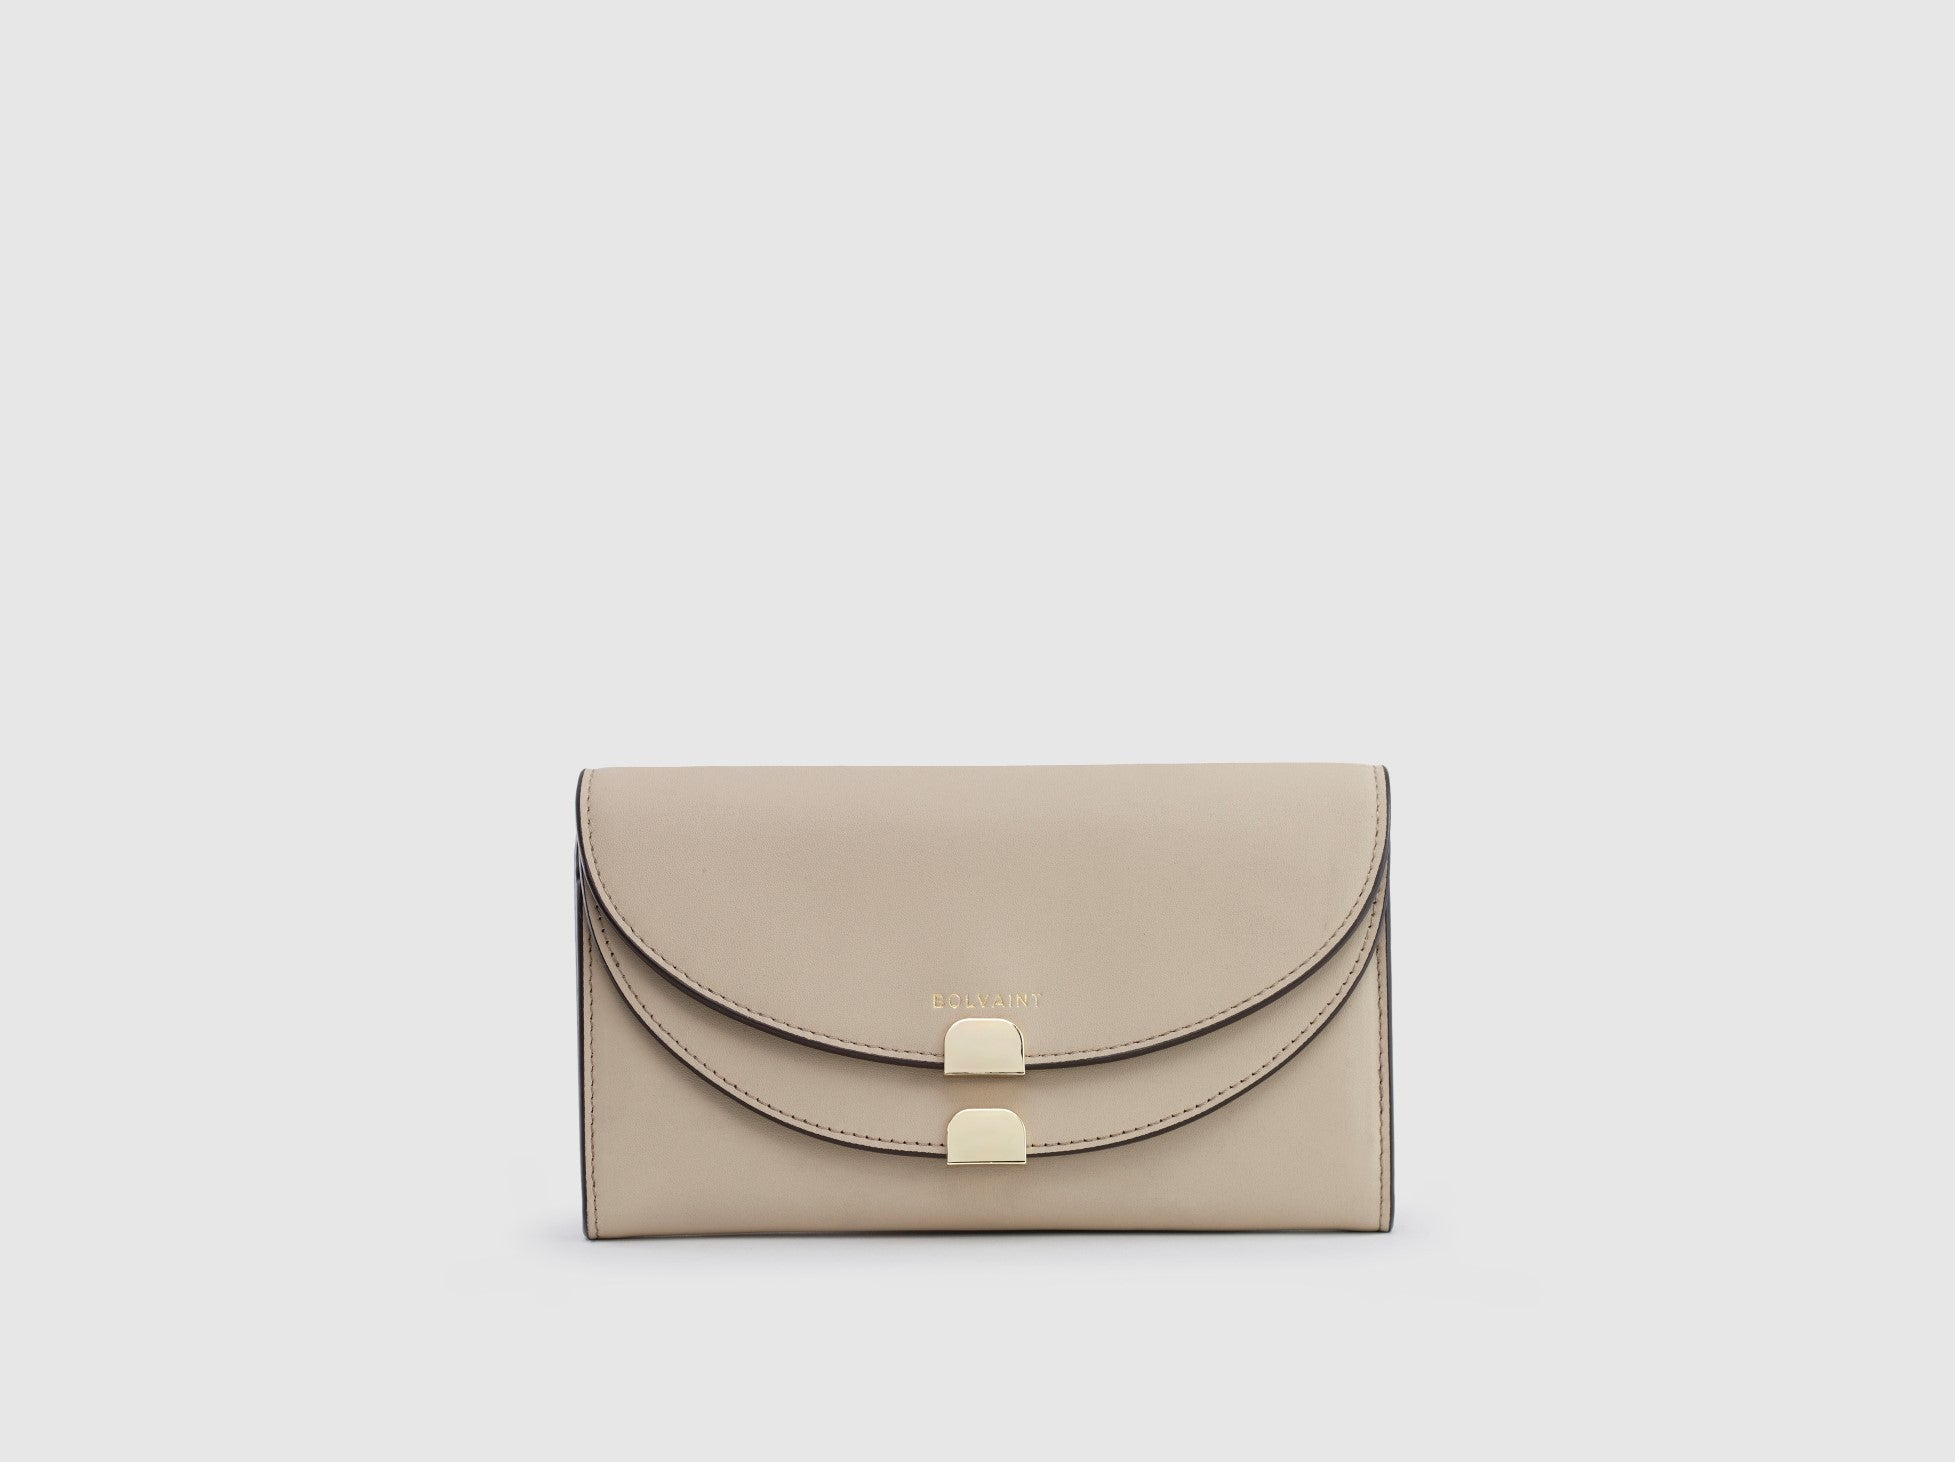 The Aimee Foldover Wallet in Ecru